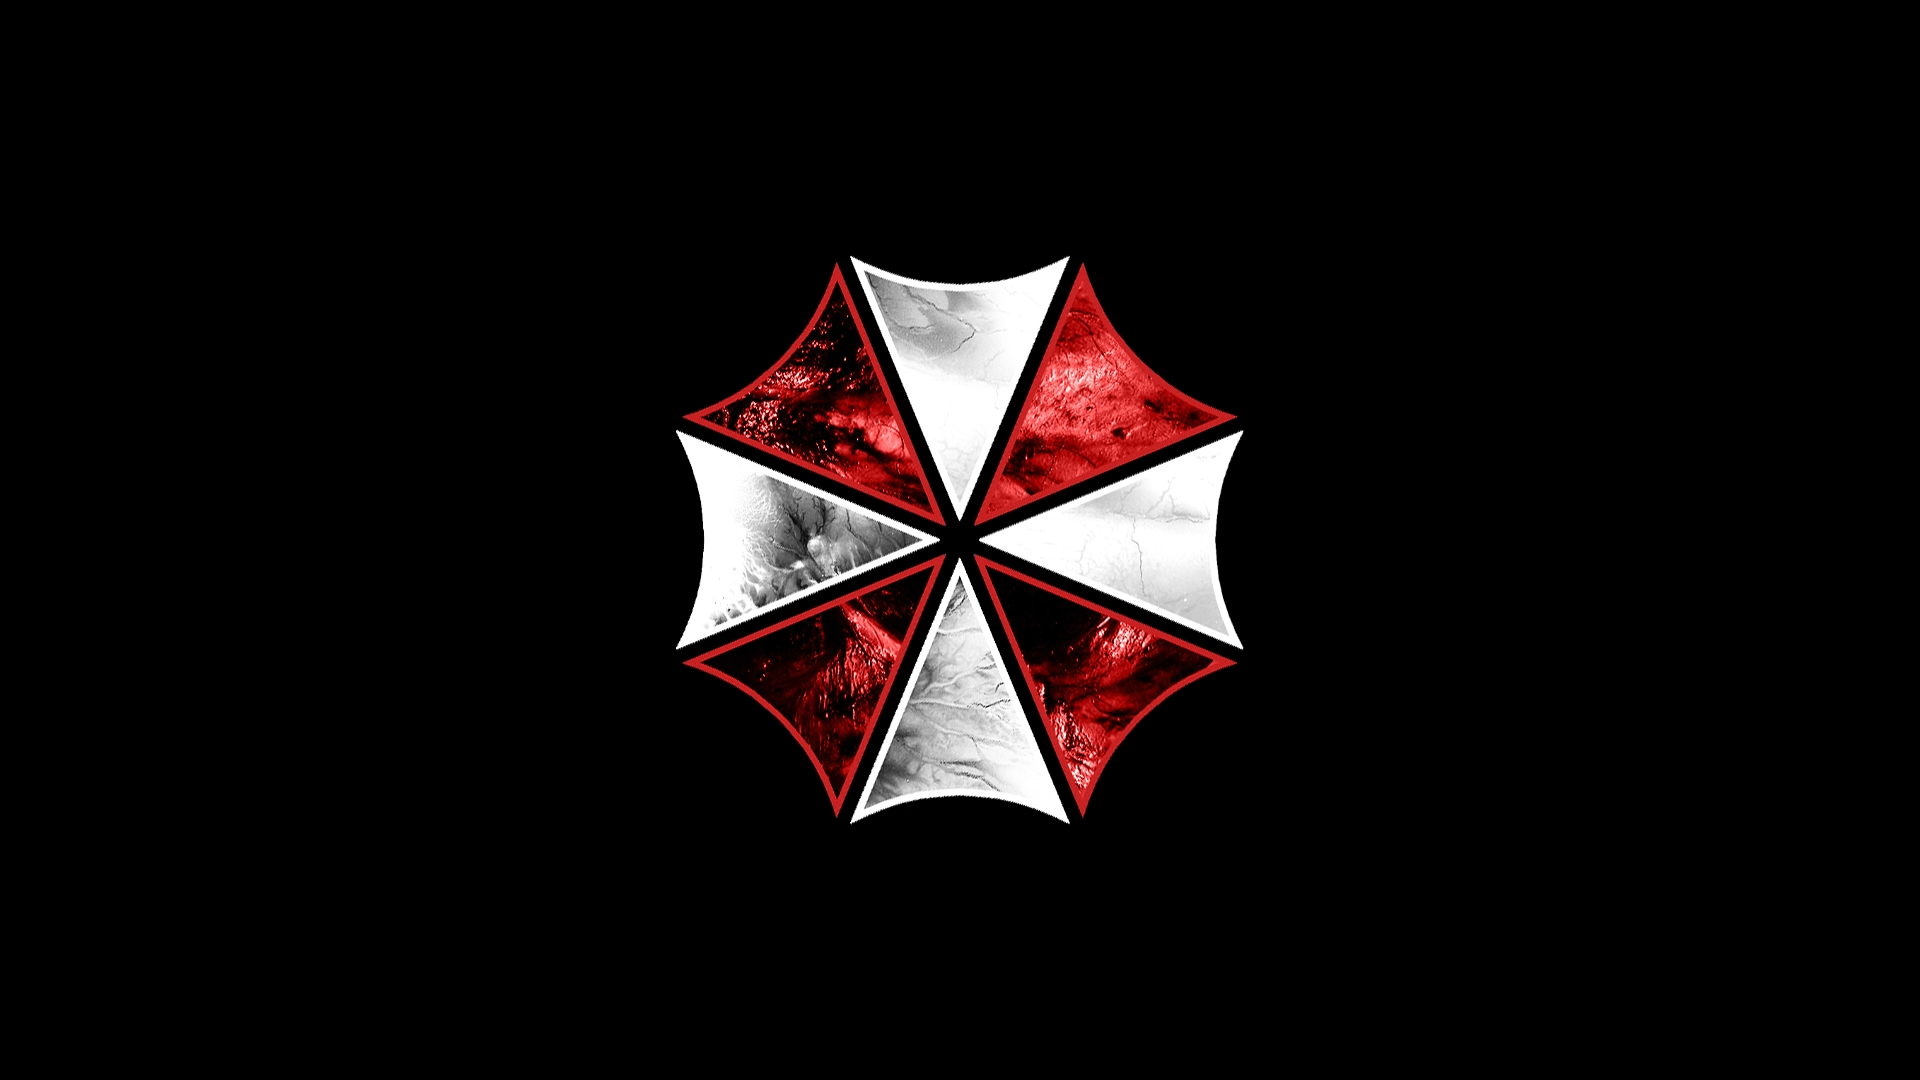 10 Top Resident Evil Umbrella Wallpaper Hd FULL HD 1920×1080 For PC Desktop